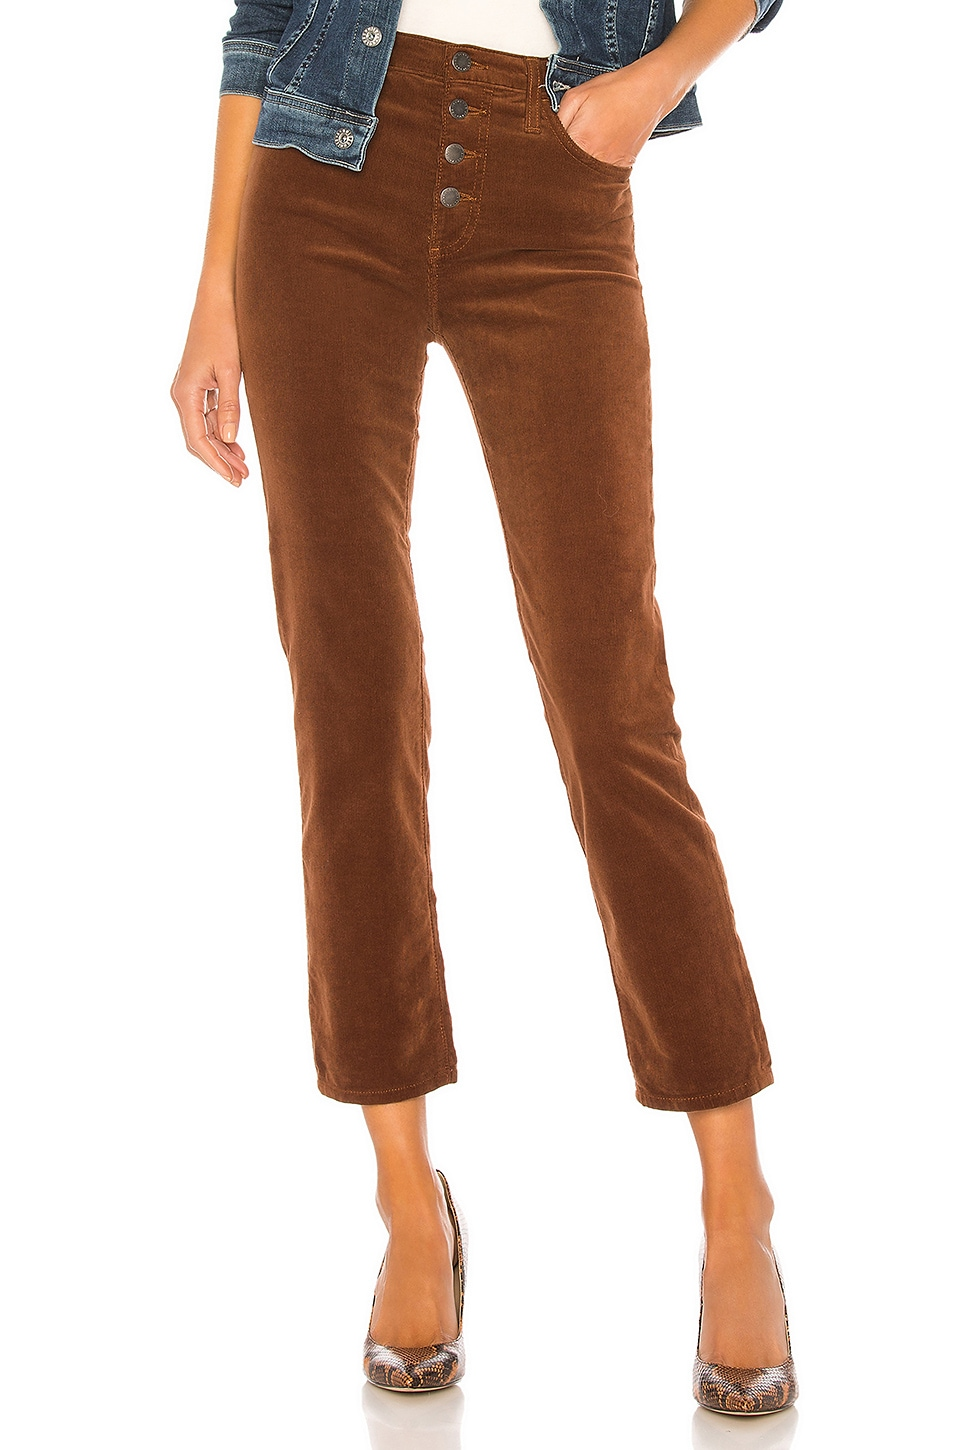 AG Adriano Goldschmied Isabelle Button Up Pant in Dusty Auburn